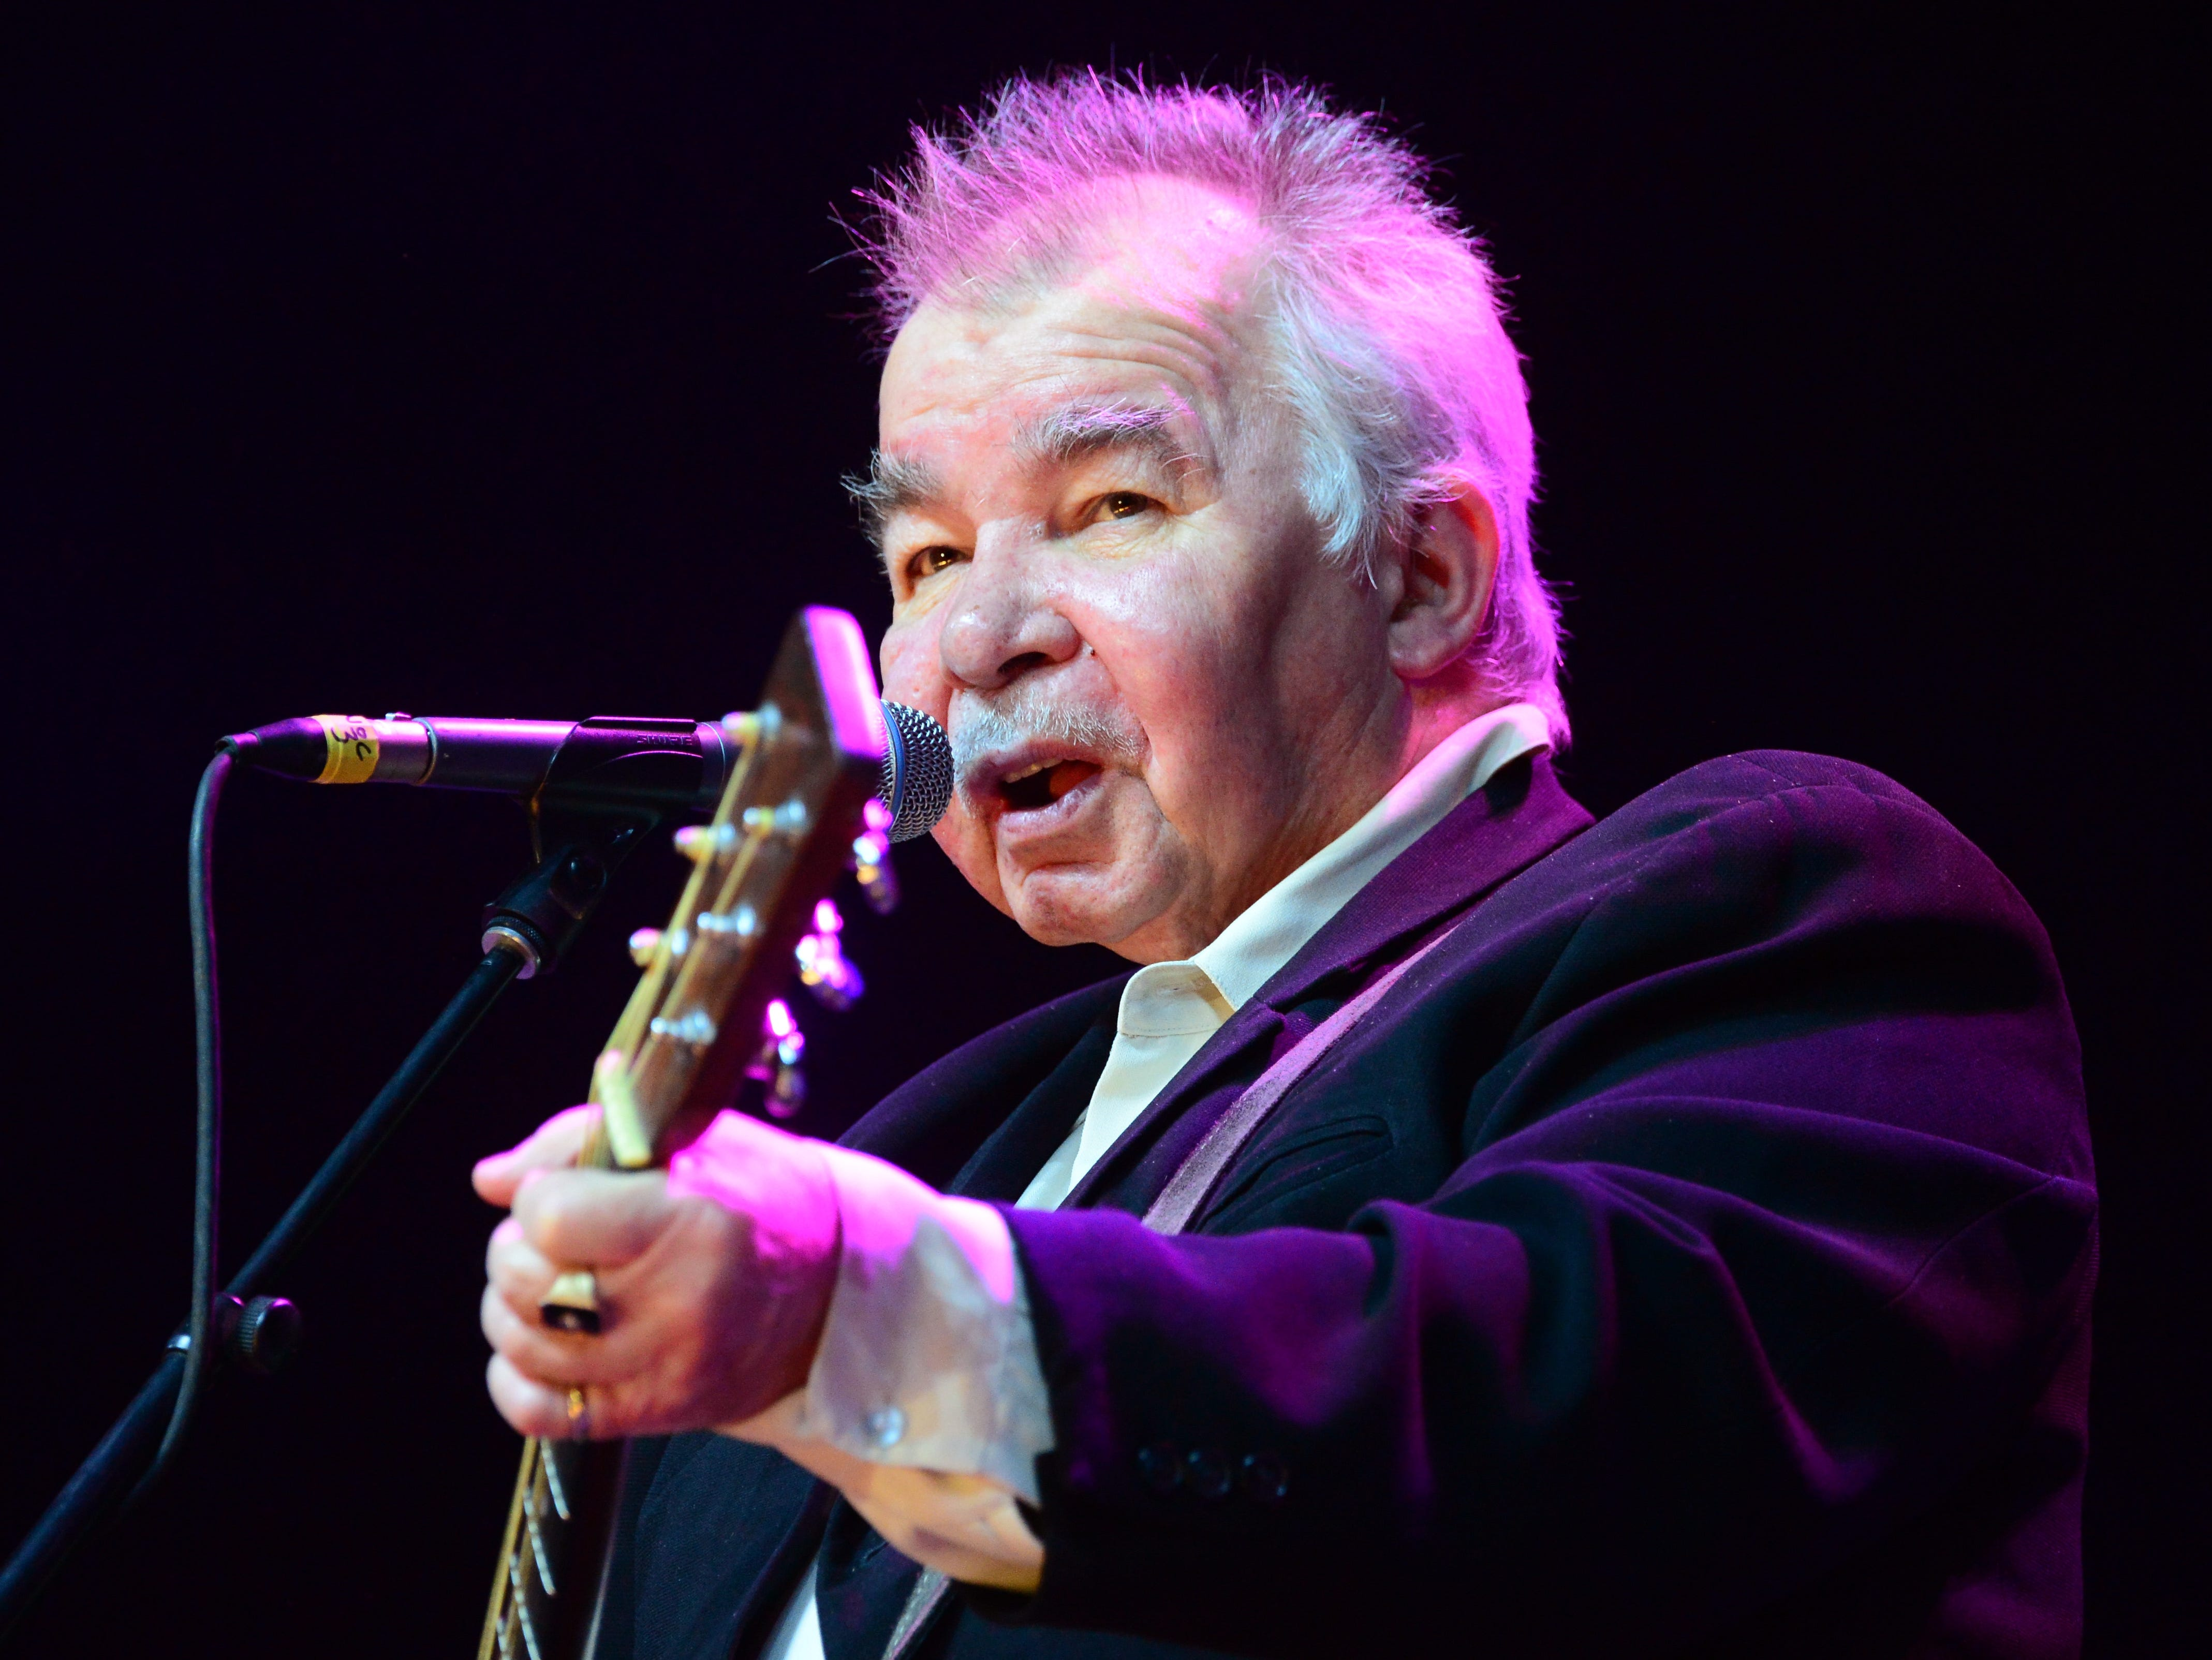 John Prine is a two-time Grammy Award winner and a member of both the Rock & Roll Hall of Fame and the Songwriters Hall of Fame.